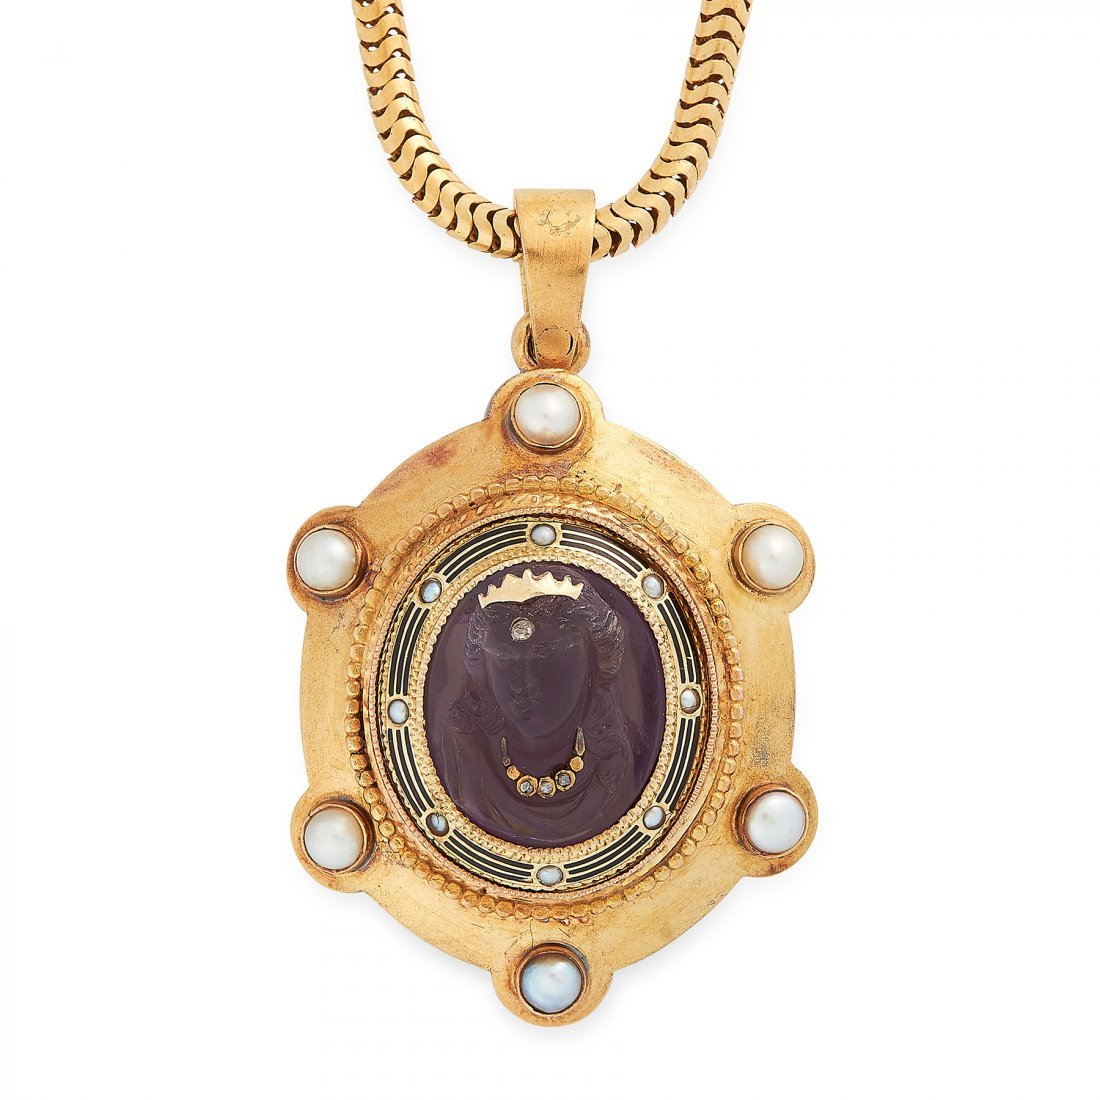 ANTIQUE AMETHYST, PEARL, ENAMEL AND PEARL CAMEO PENDANT